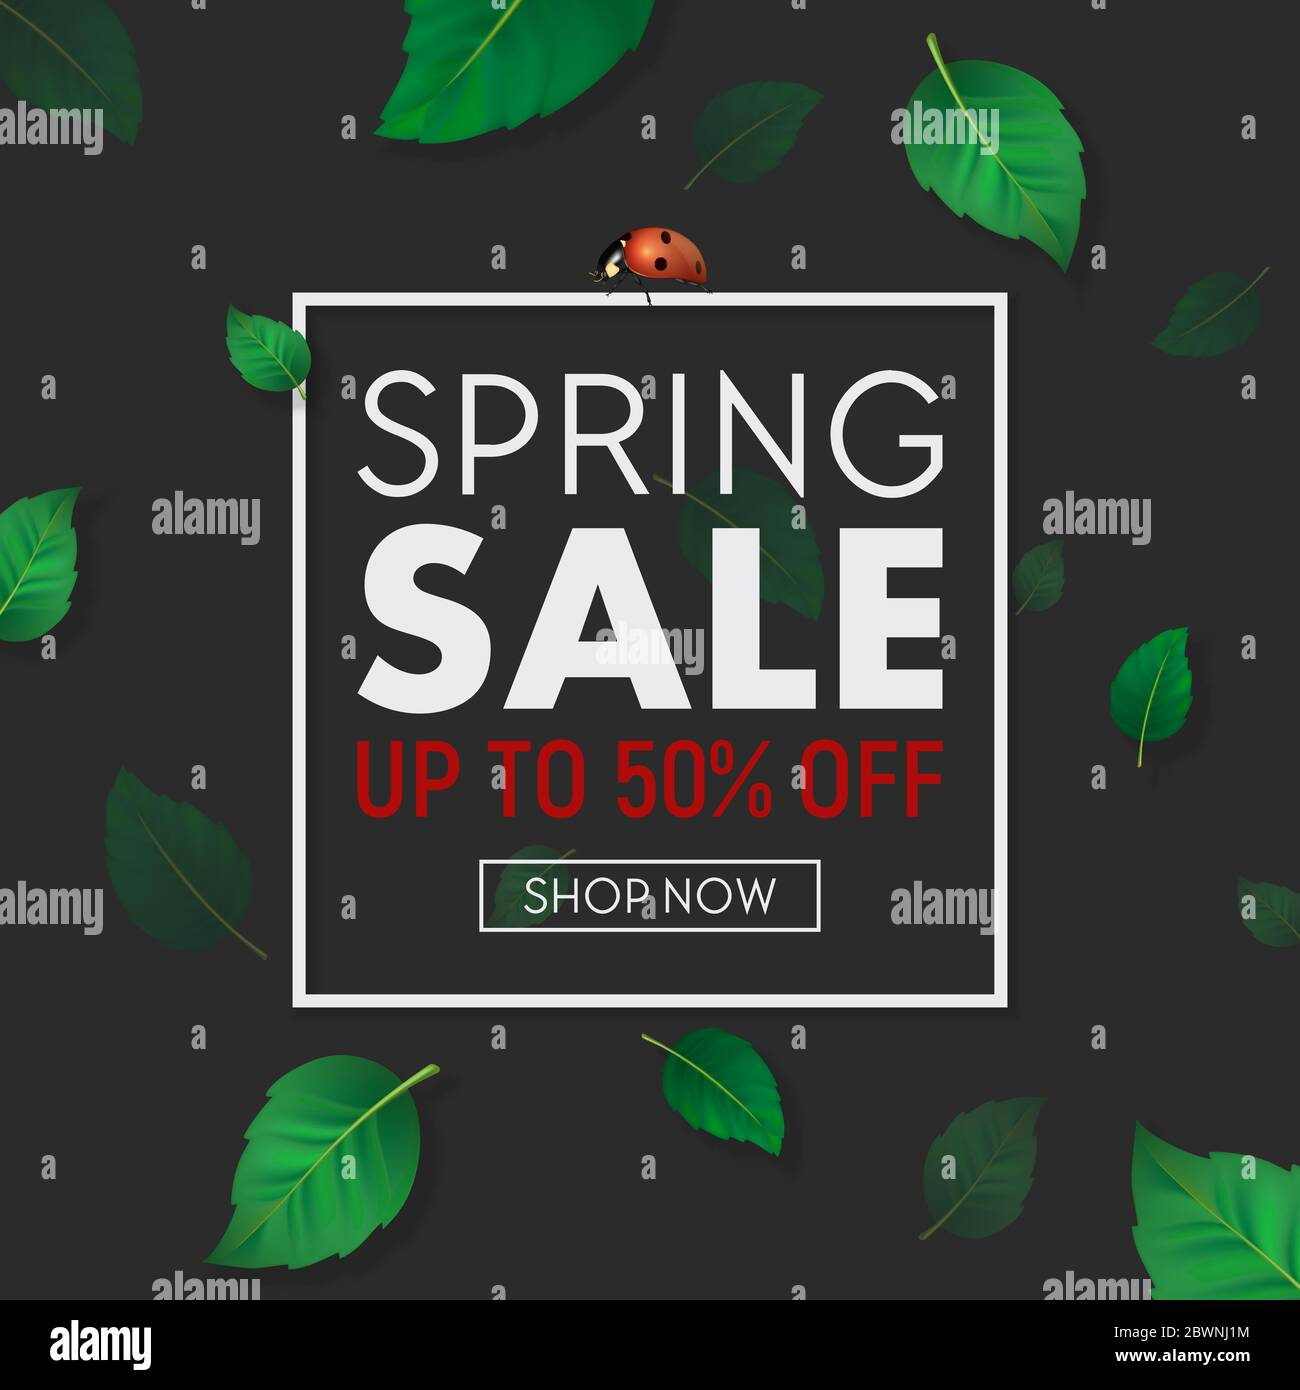 Spring Sale Background Banner With Frame Beautiful Green Leaves And Ladybug Design Template For Online Store Flyer Poster Shopping Selling Sign Stock Vector Image Art Alamy